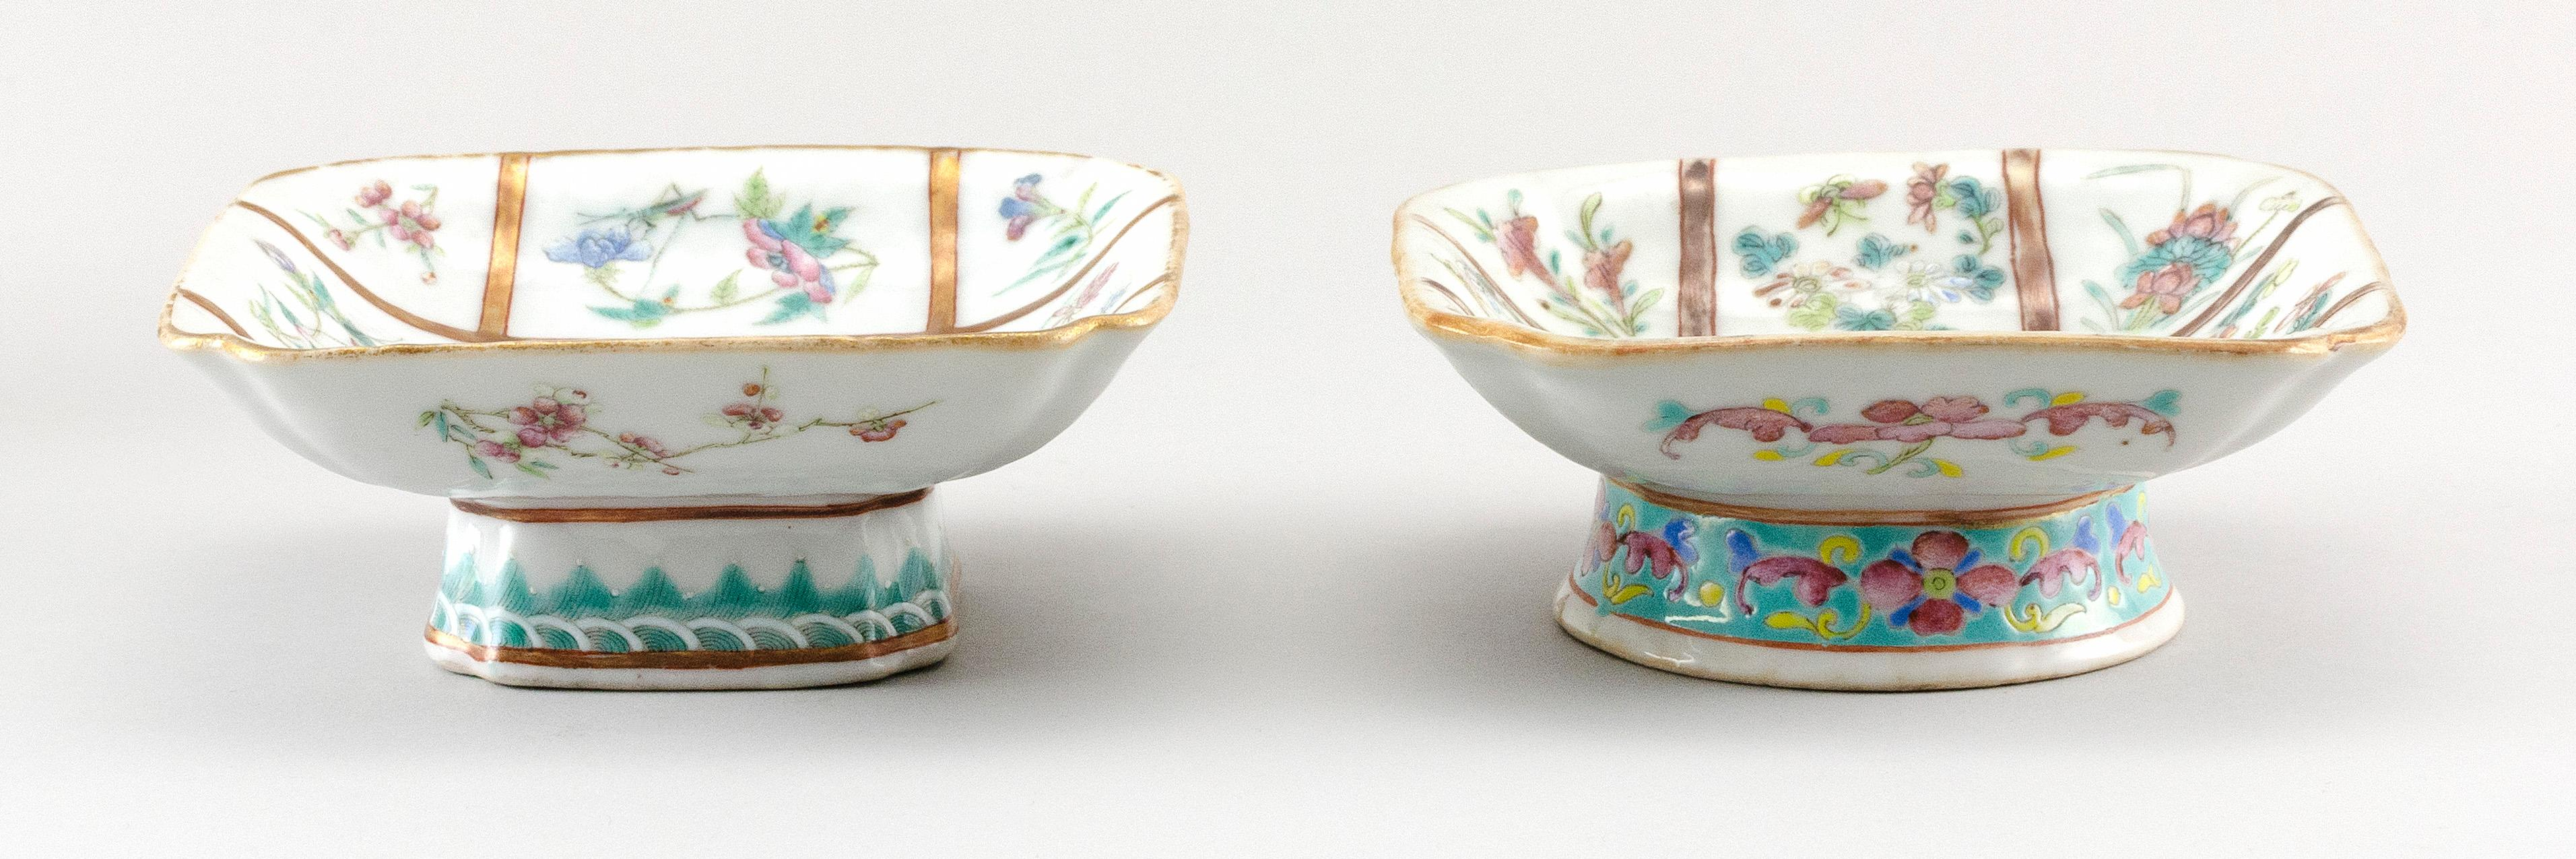 TWO NEAR-MATCHING CHINESE FAMILLE ROSE PORCELAIN FOOTED DISHES Square, with interior decoration of flowers and insects on a bisected...